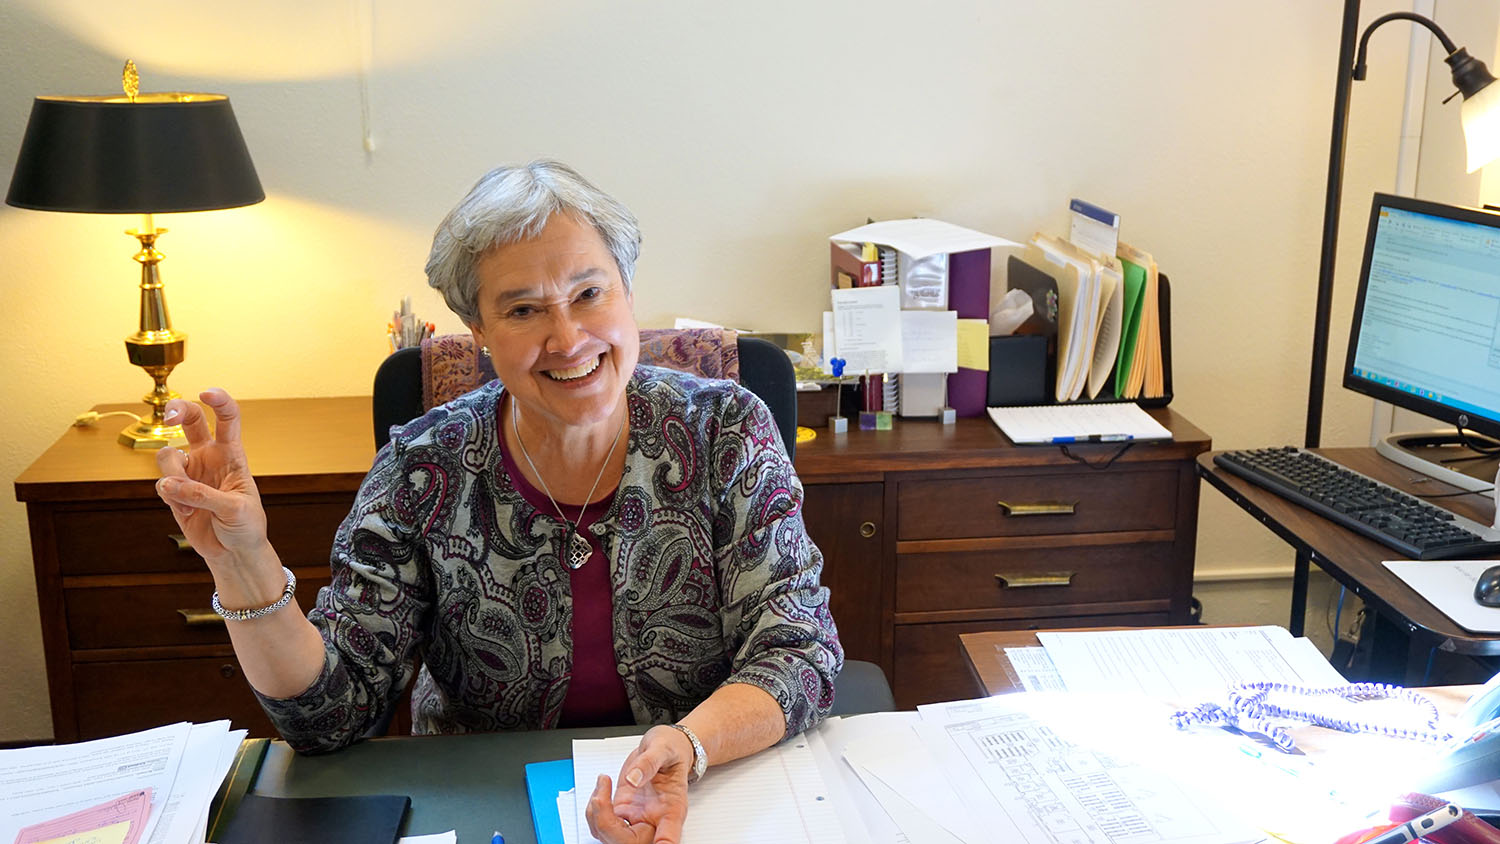 Mary Kincannon has worked at TCU for over 32 years, and she is excited about her new position.